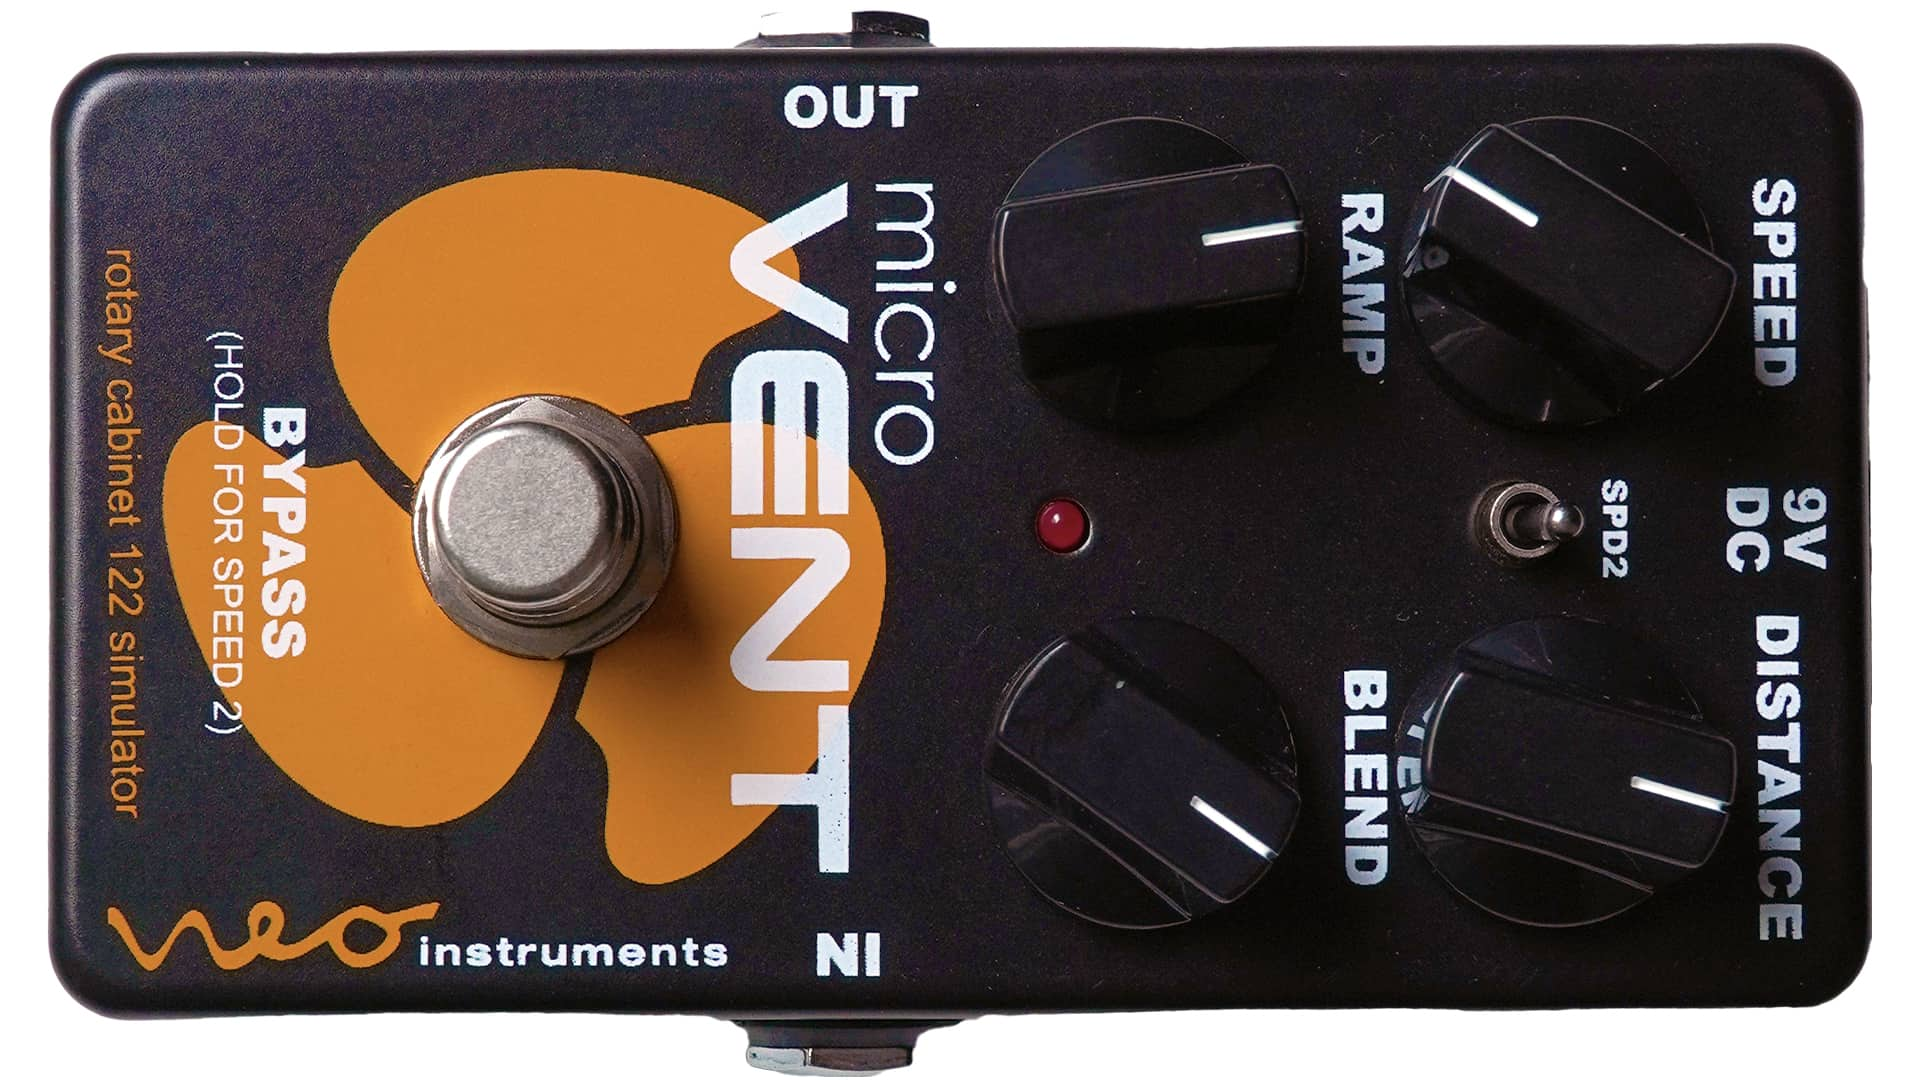 Neo Instruments micro Vent 122 Test